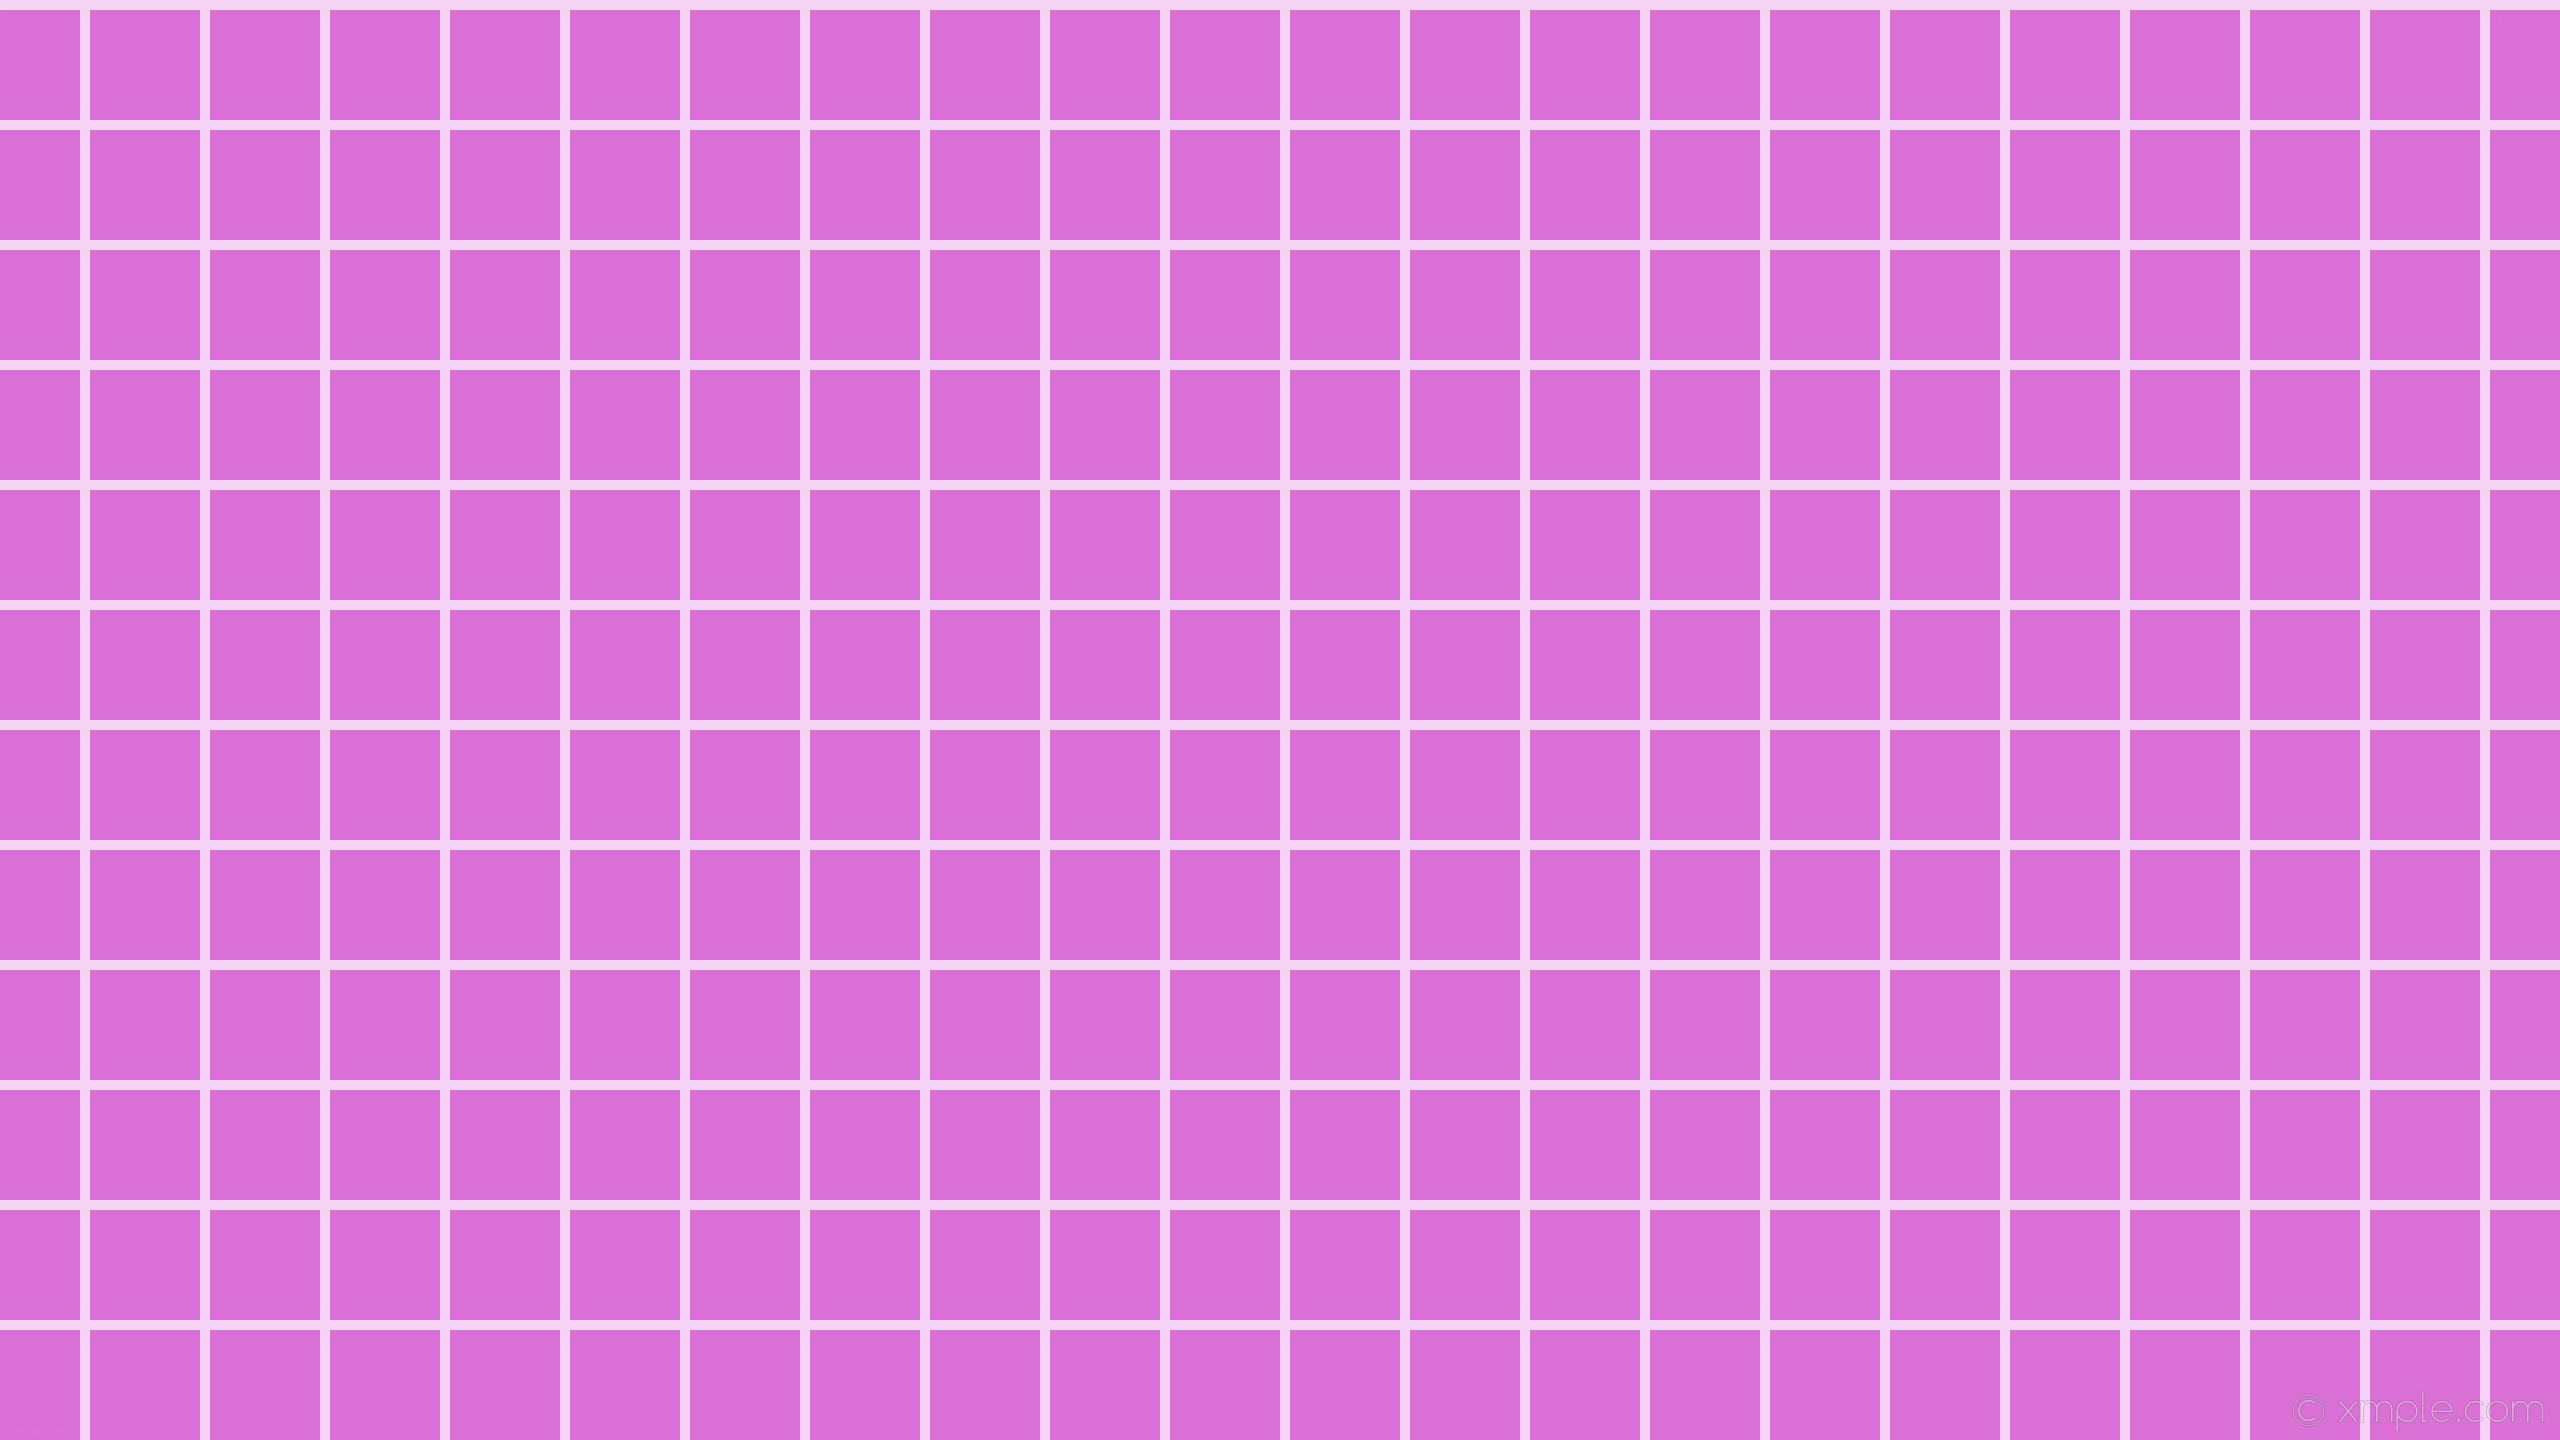 2560x1440 wallpaper graph paper purple grid white orchid #da70d6 #ffffff 0° 10px 120px